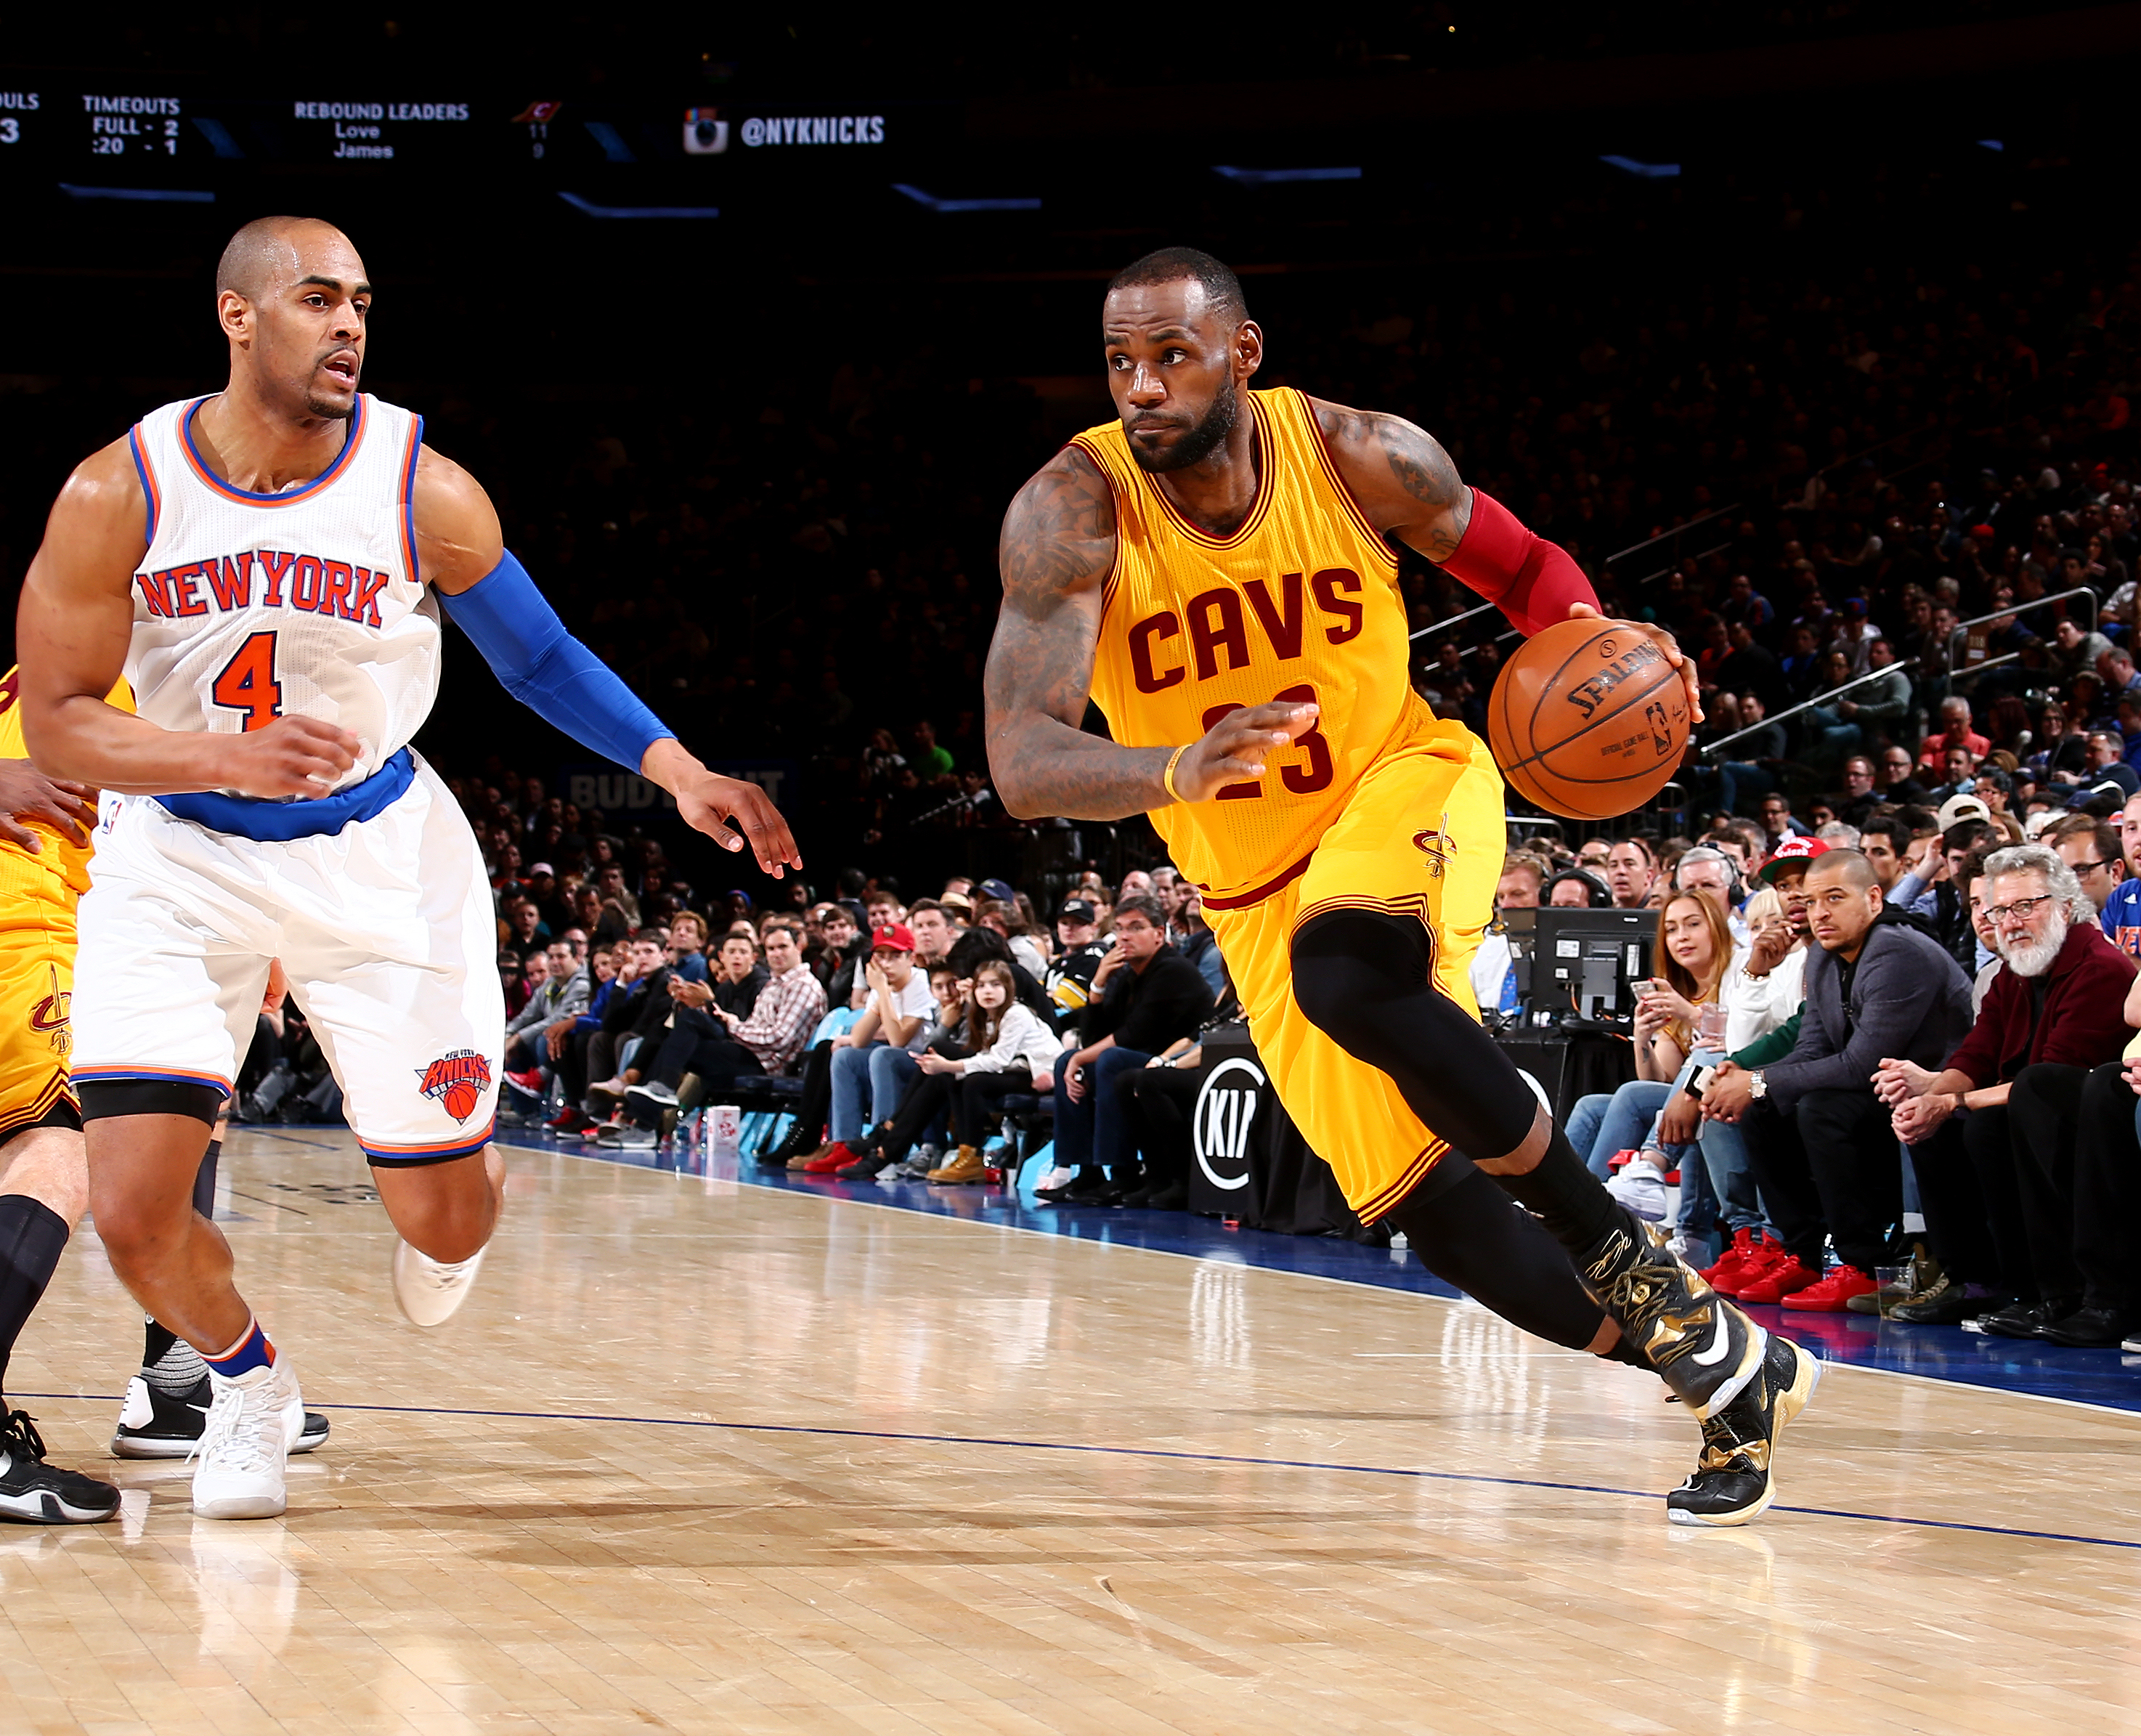 NEW YORK, NY - MARCH 26:  LeBron James #23 of the Cleveland Cavaliers handles the ball against the New York Knicks at Madison Square Garden in New York City on November 26, 2016.  (Photo by Nathaniel S. Butler/NBAE via Getty Images)